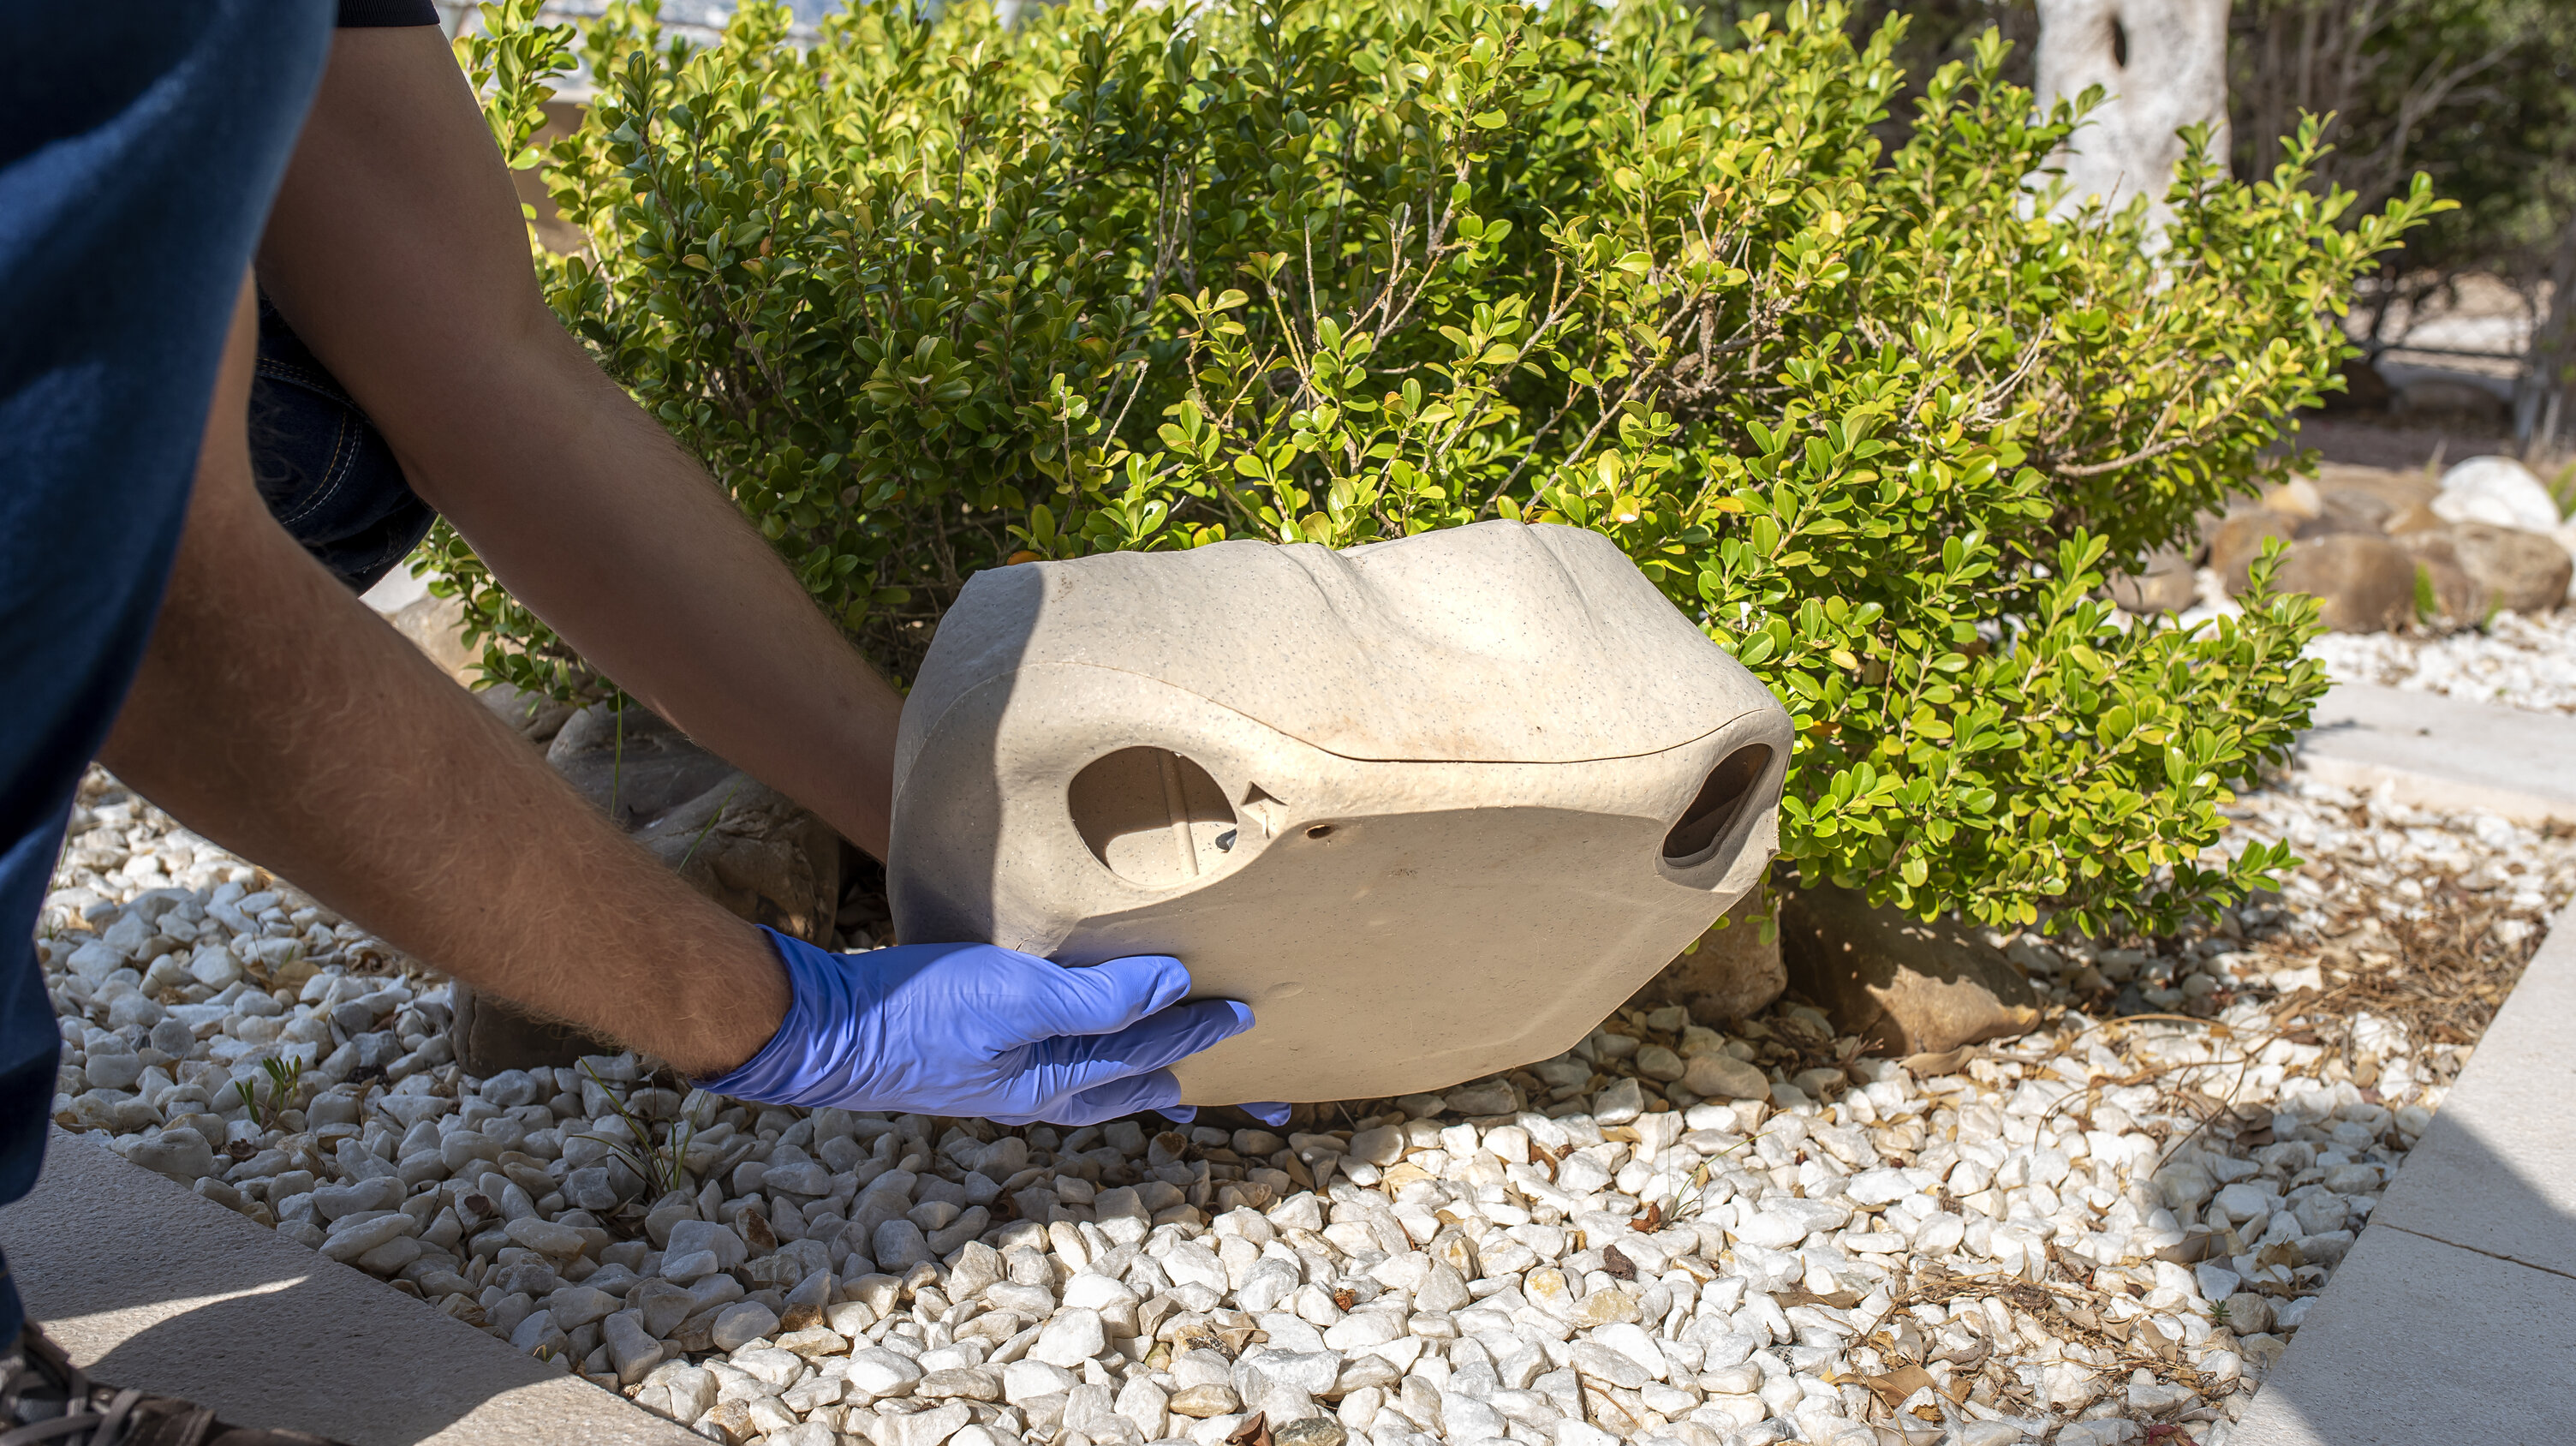 A specialist places a mouse trap that is disguised as a natural rock in the yard of a home near some green bushes.